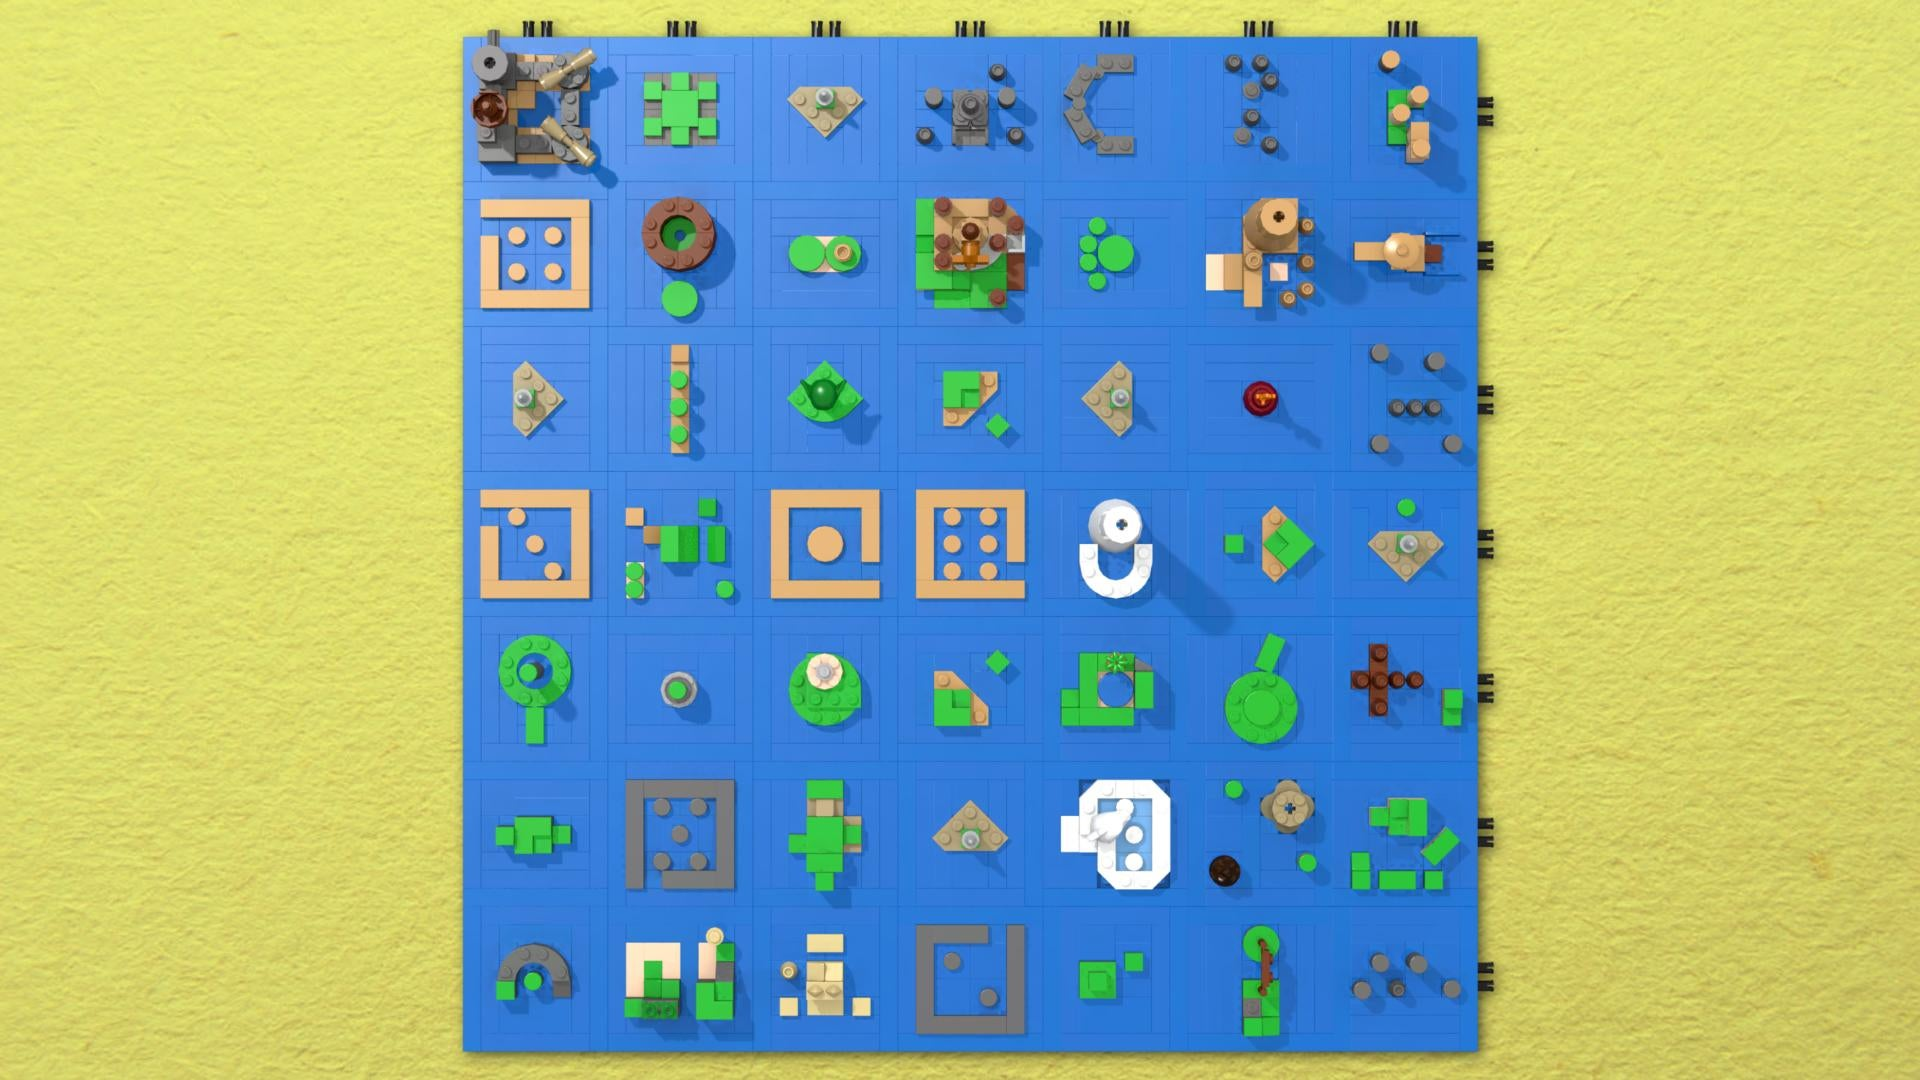 the legend of zelda the wind waker's sea chart as a lego  - the legend of zelda the wind waker's sea chart as a lego microbuild